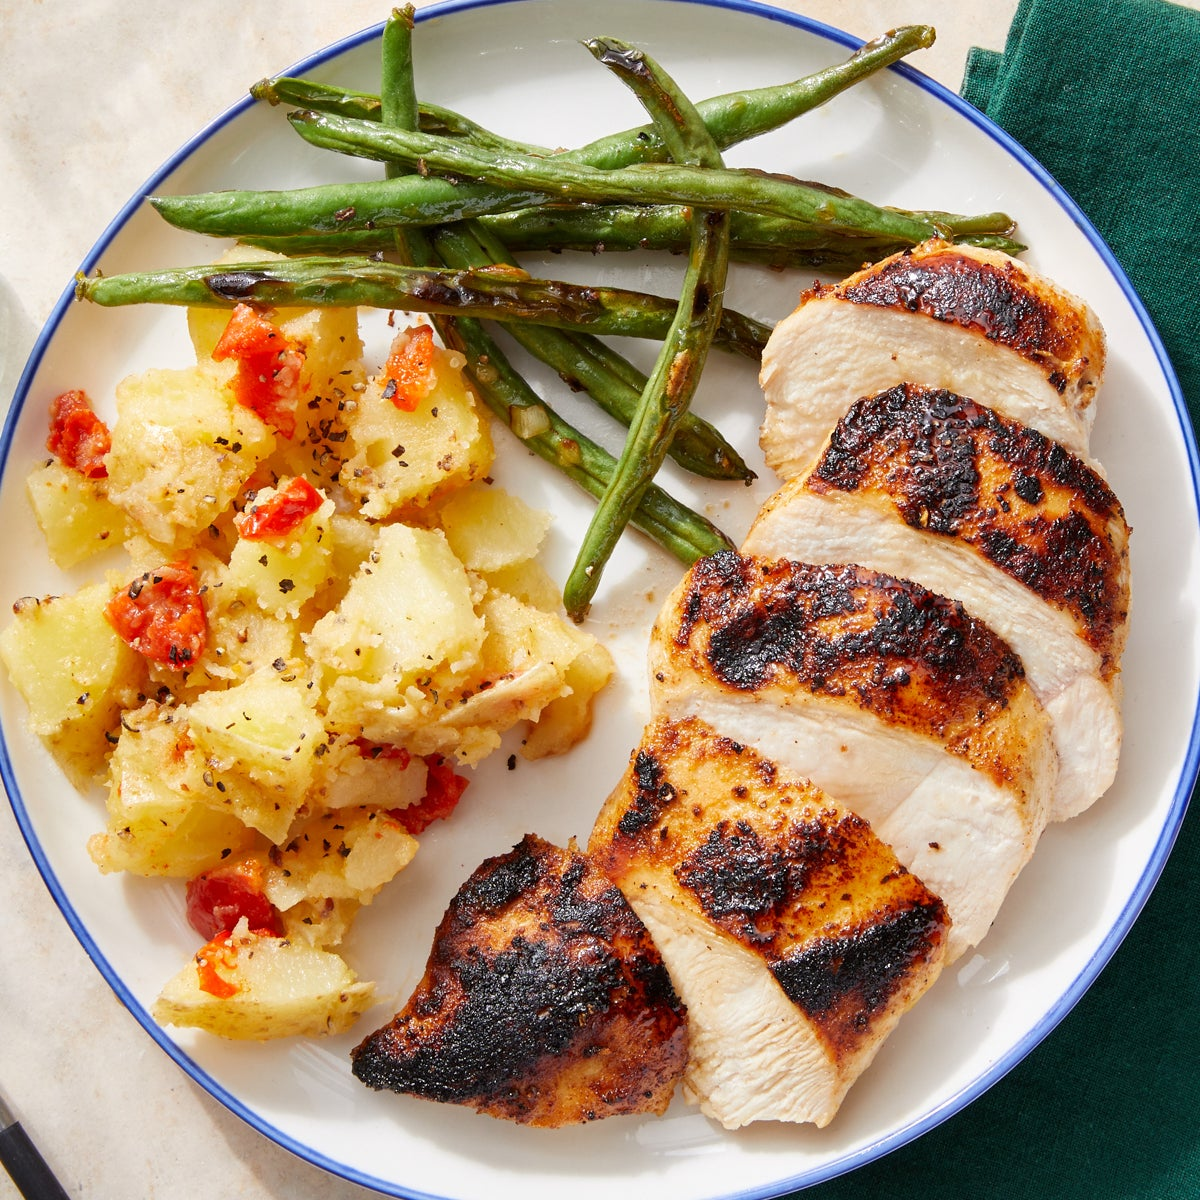 Seared Chicken & Potato Salad with Maple-Glazed Green Beans